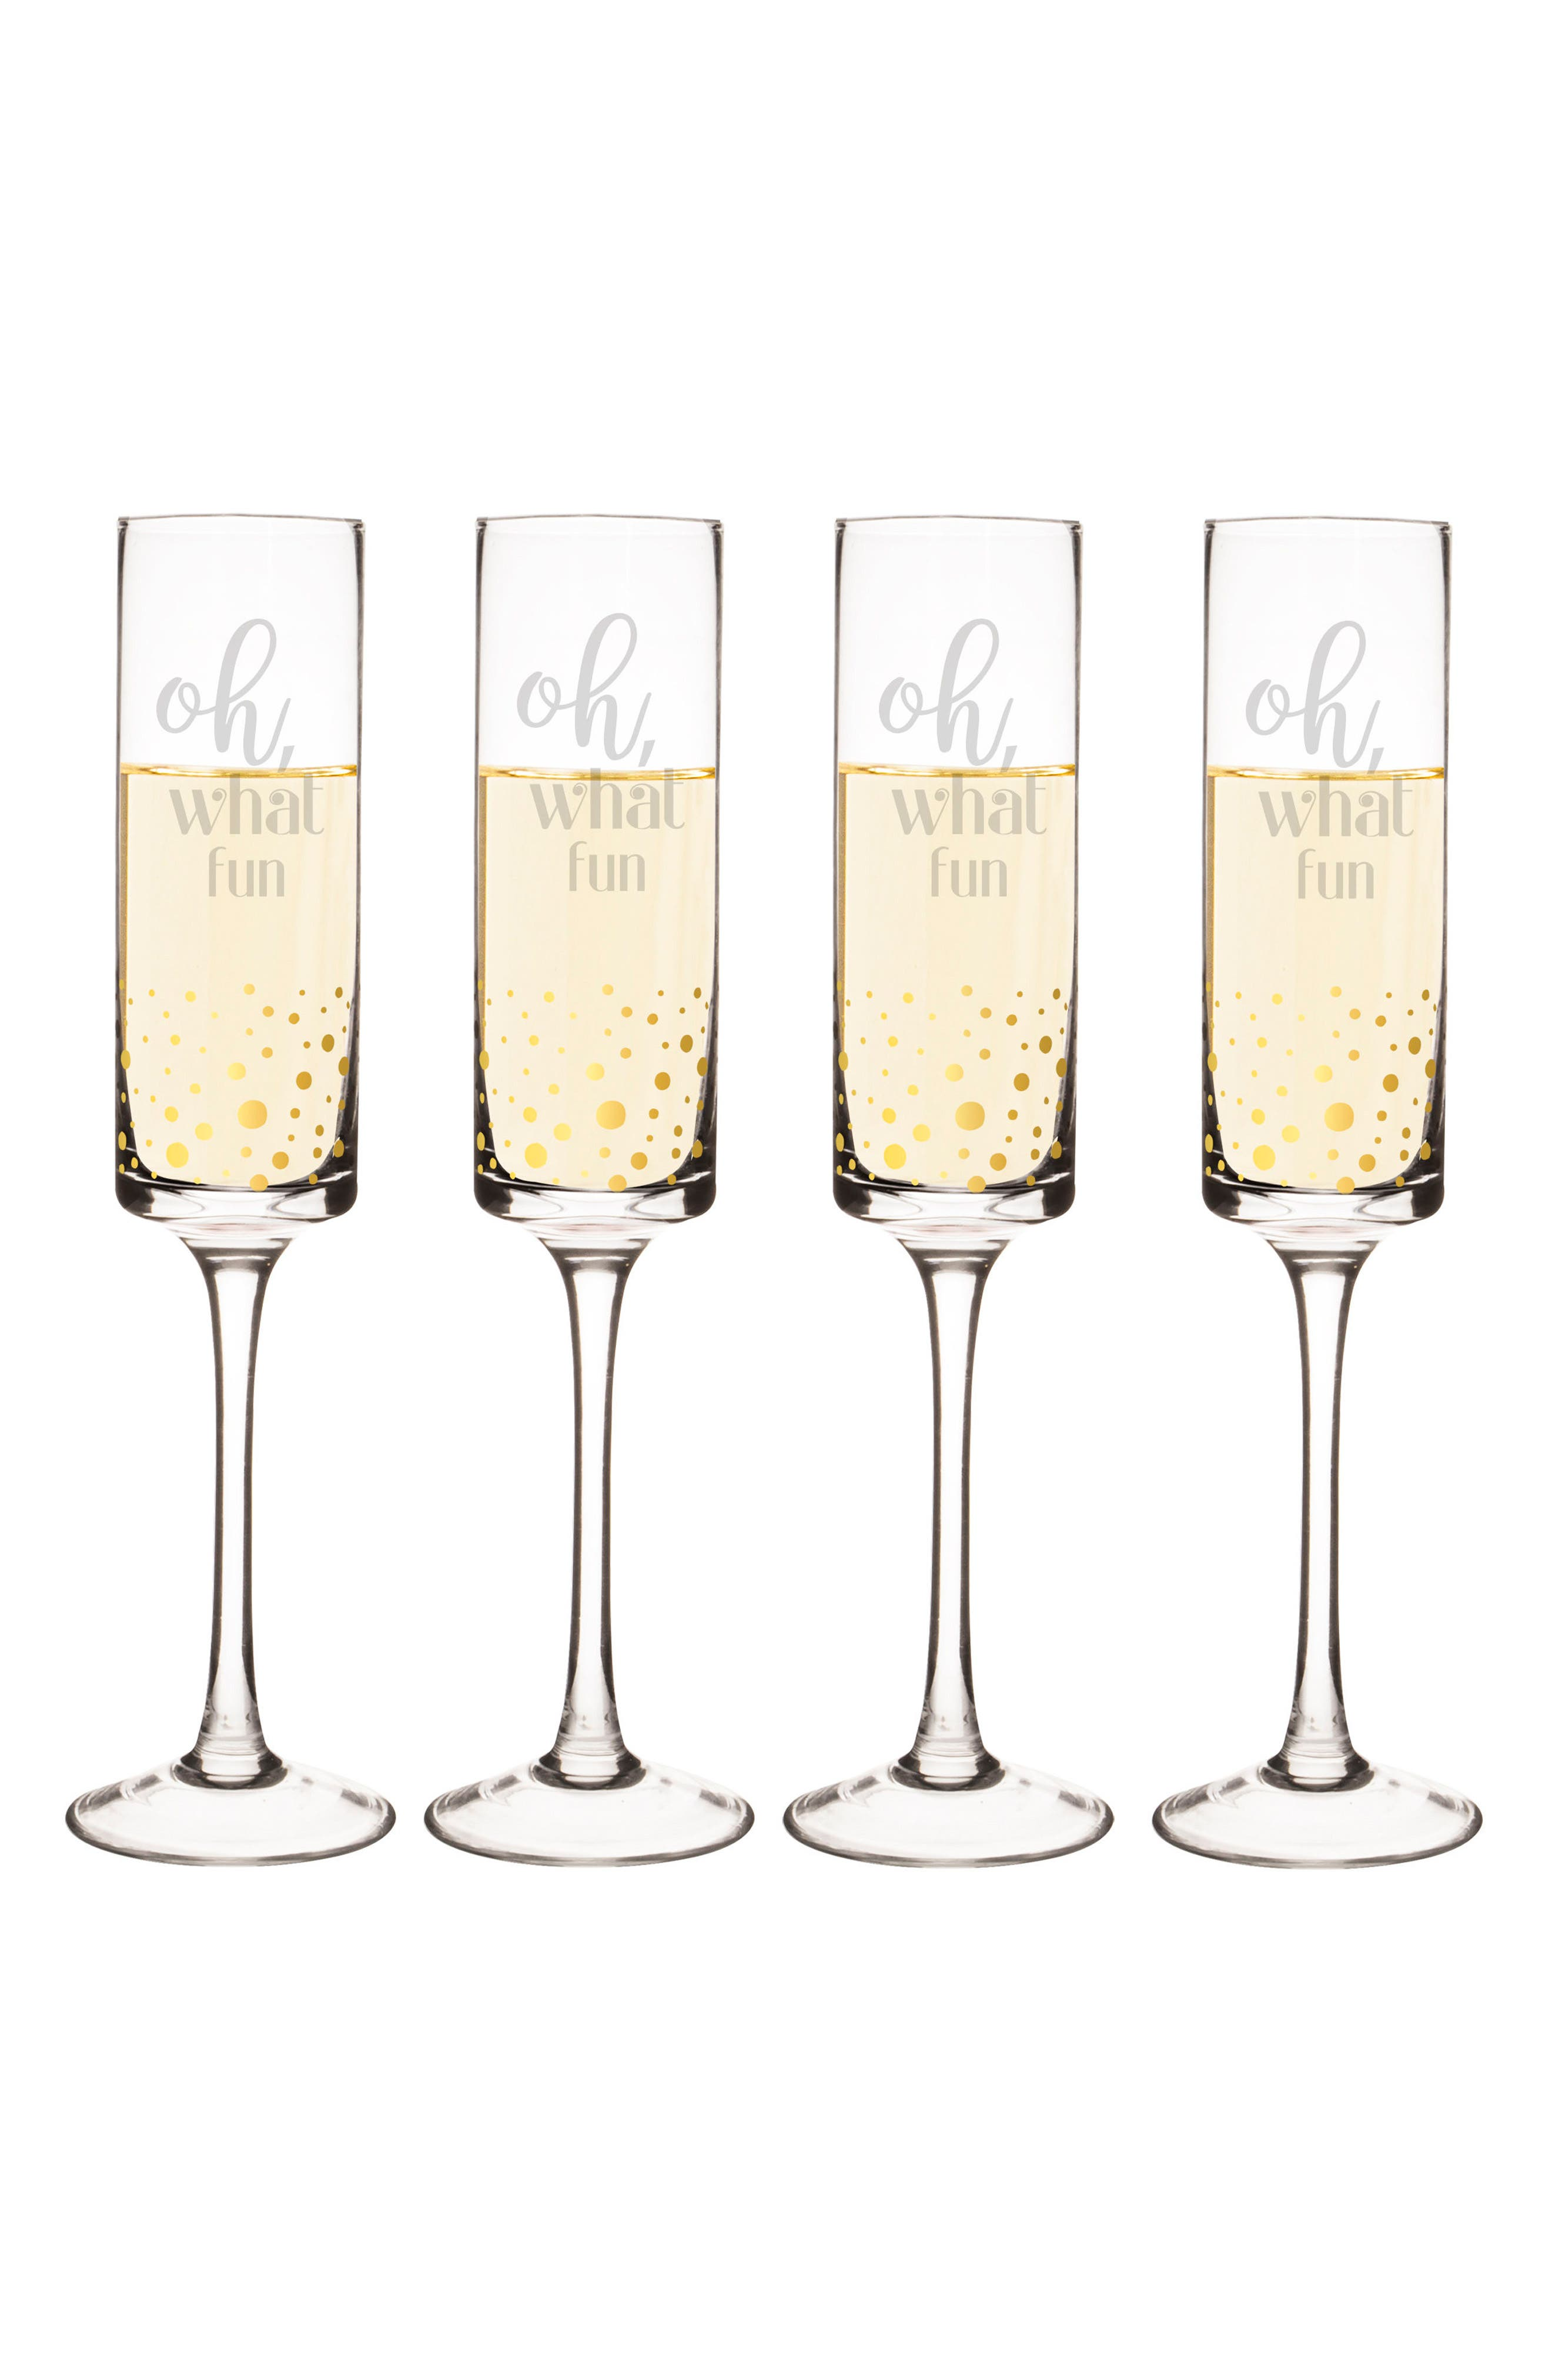 Main Image - Cathy's Concepts Oh What Fun Set of 4 Champagne Flutes